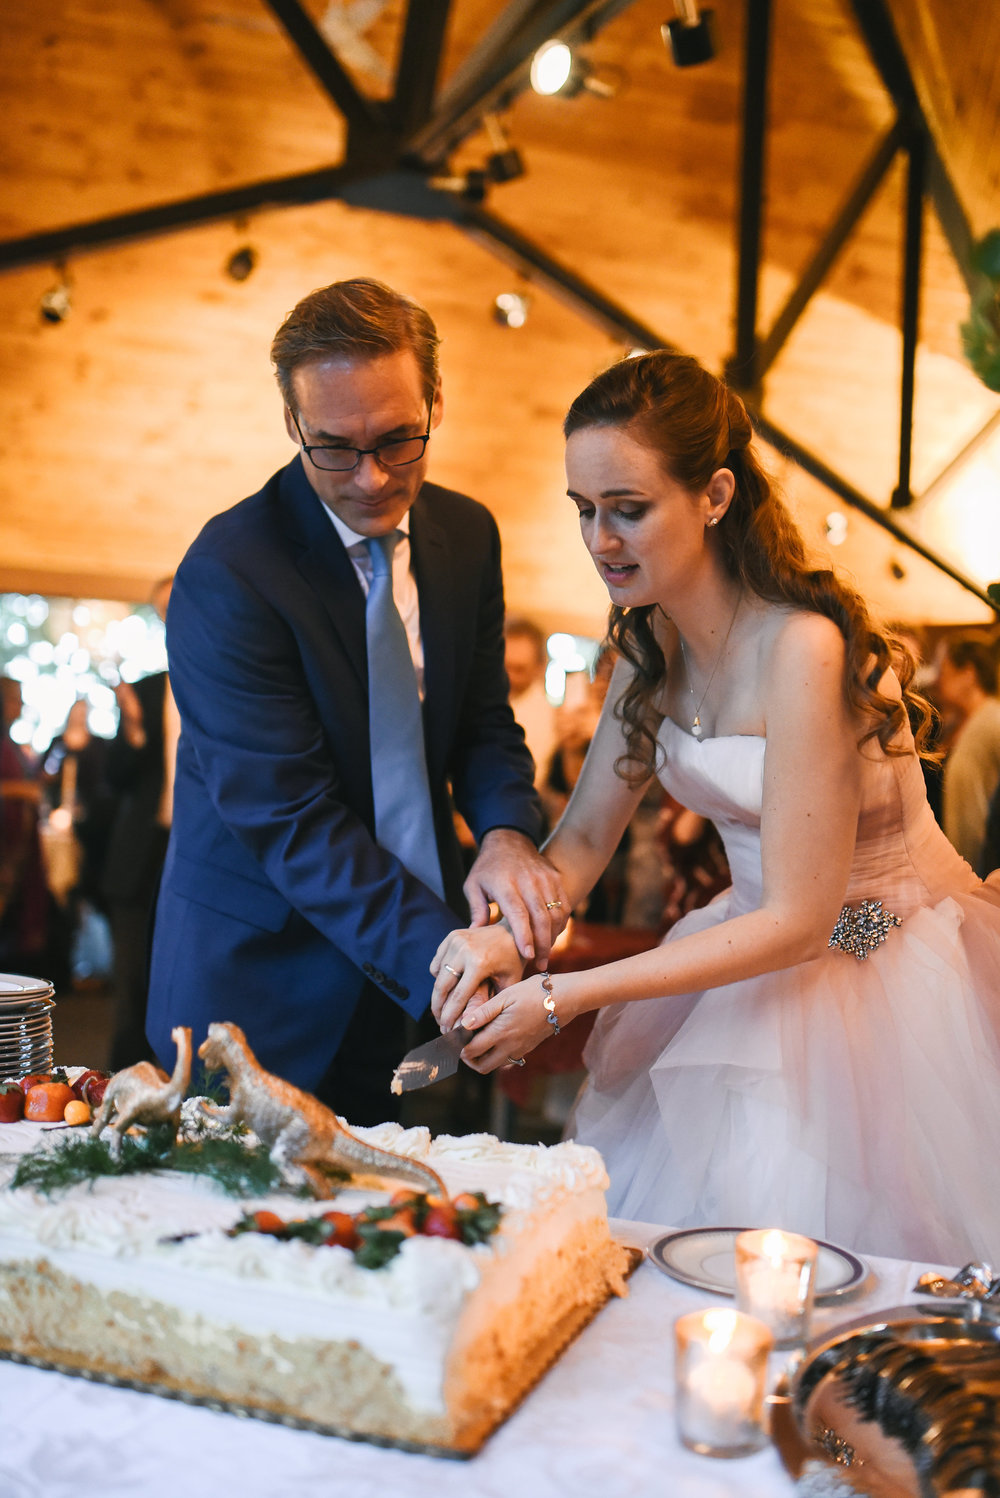 Vintage, DIY, Rustic, Germantown, DC Wedding Photographer, Alternative, Casual, Outdoor Wedding, Wedding Cake, Cake Topper, Whimsical, Cutting the Cake, Bride and Groom, Wedding Reception